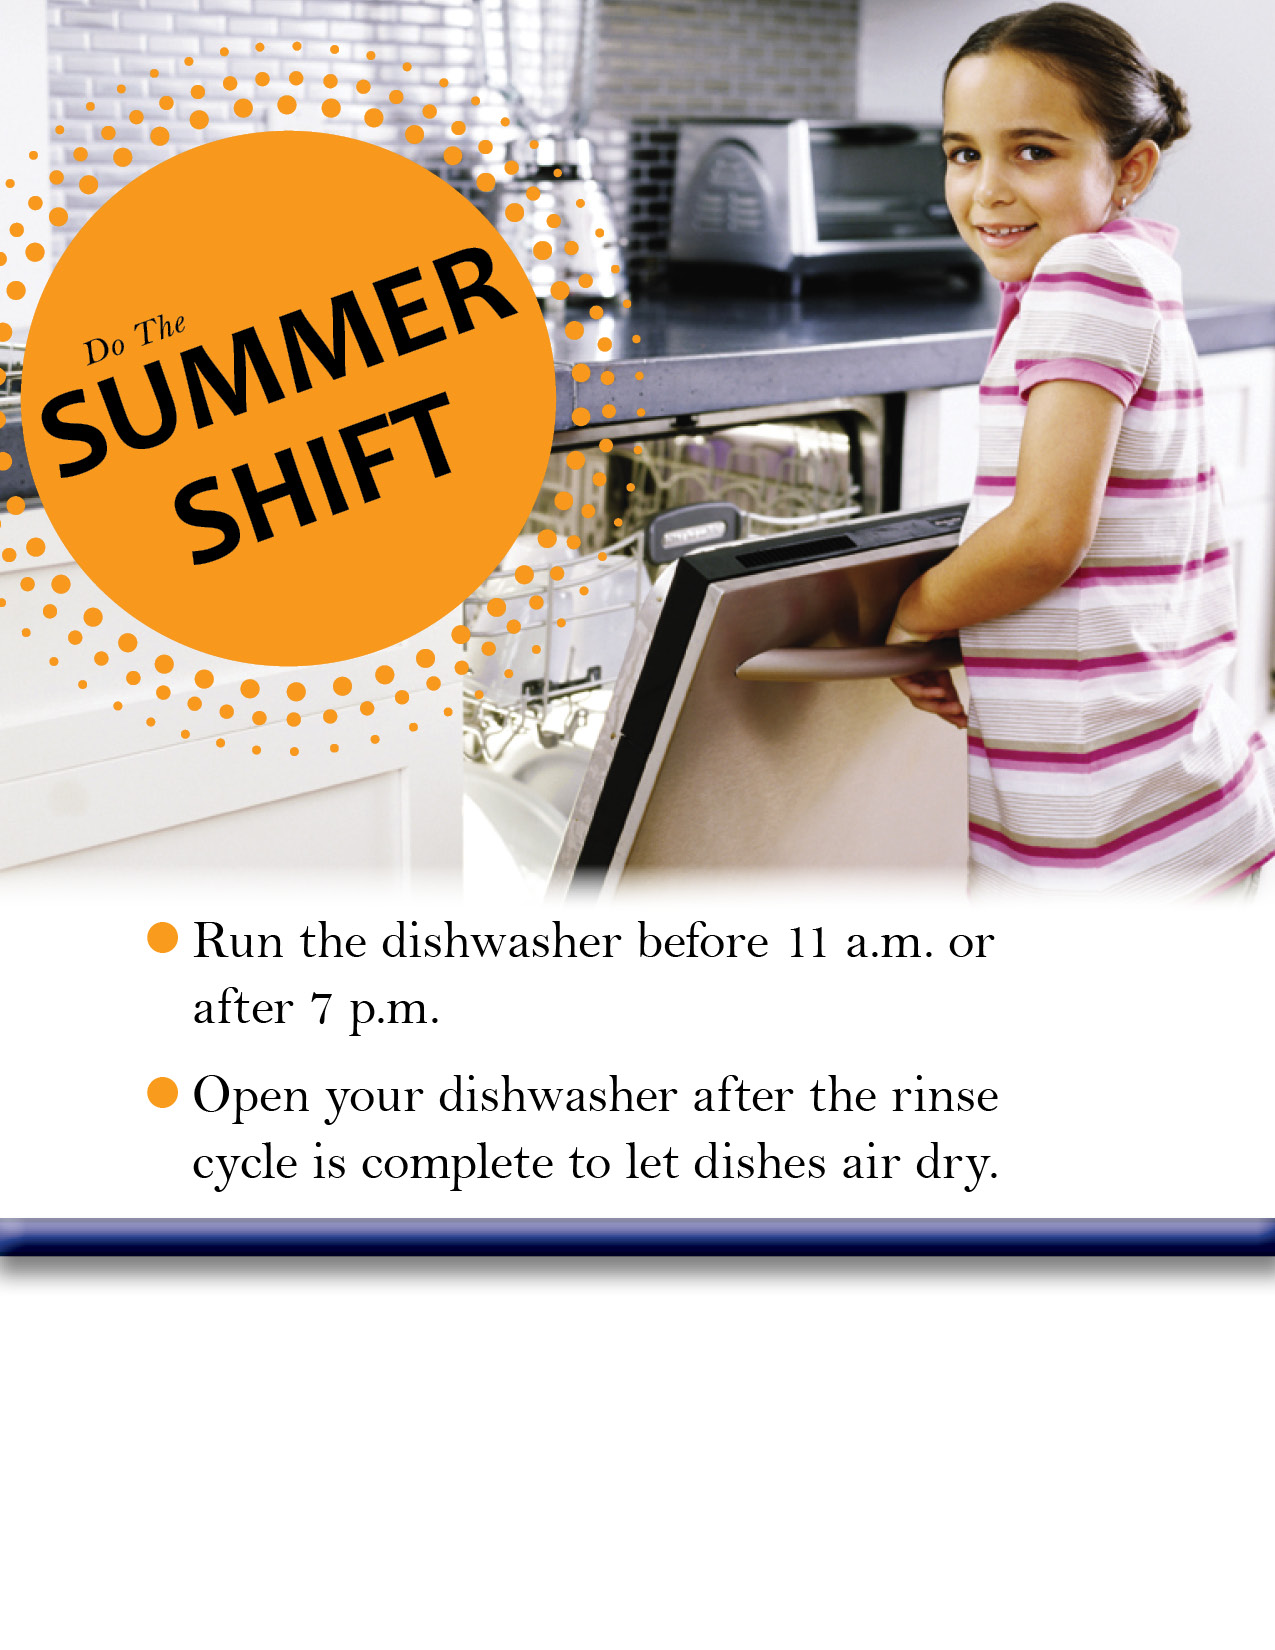 Do the Summer Shift, Wash Dishes Before or After Peak Times, Air Dry